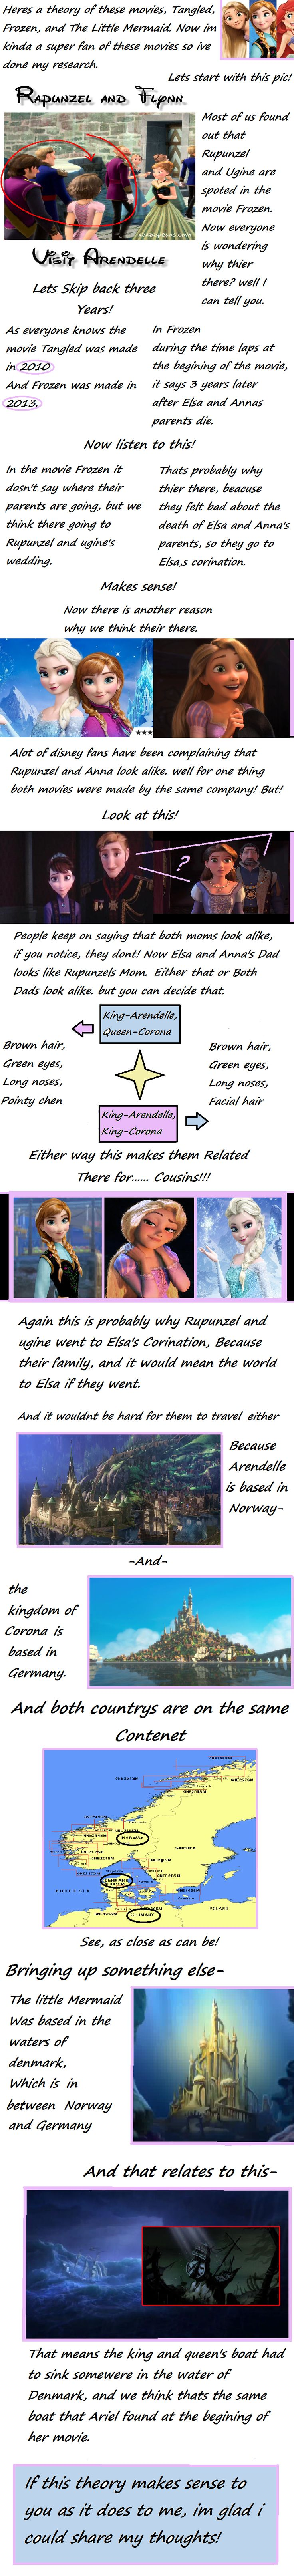 my own write on the Frozen, Tangled, Little mermaid theory!